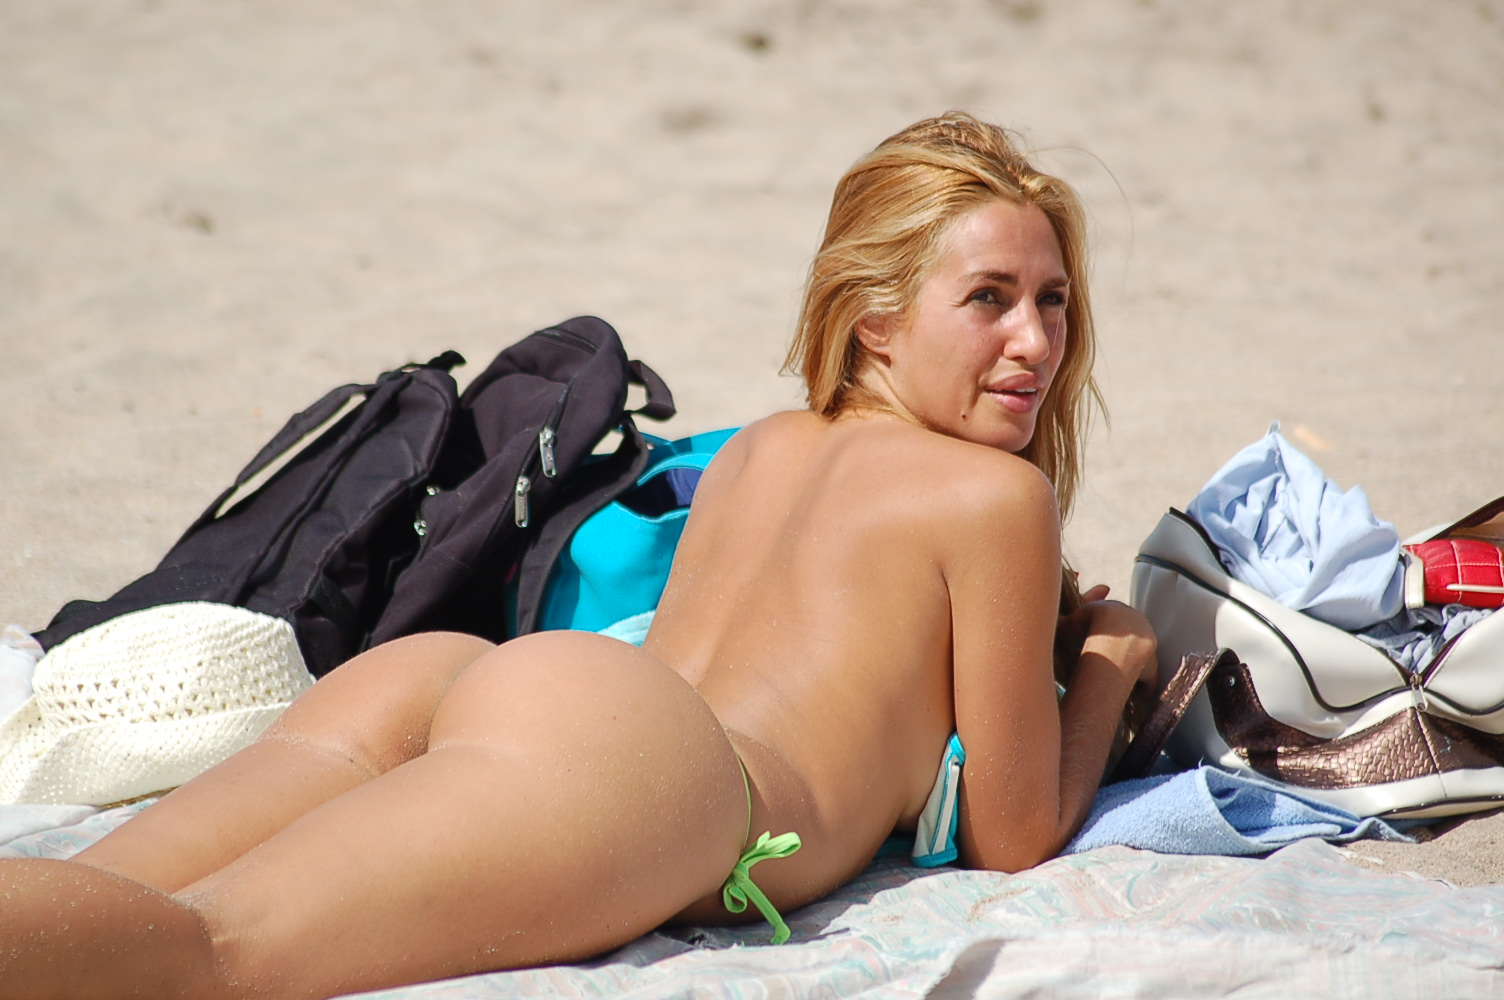 http://upload.wikimedia.org/wikipedia/commons/0/06/Blonde_Woman_at_the_beach.jpg